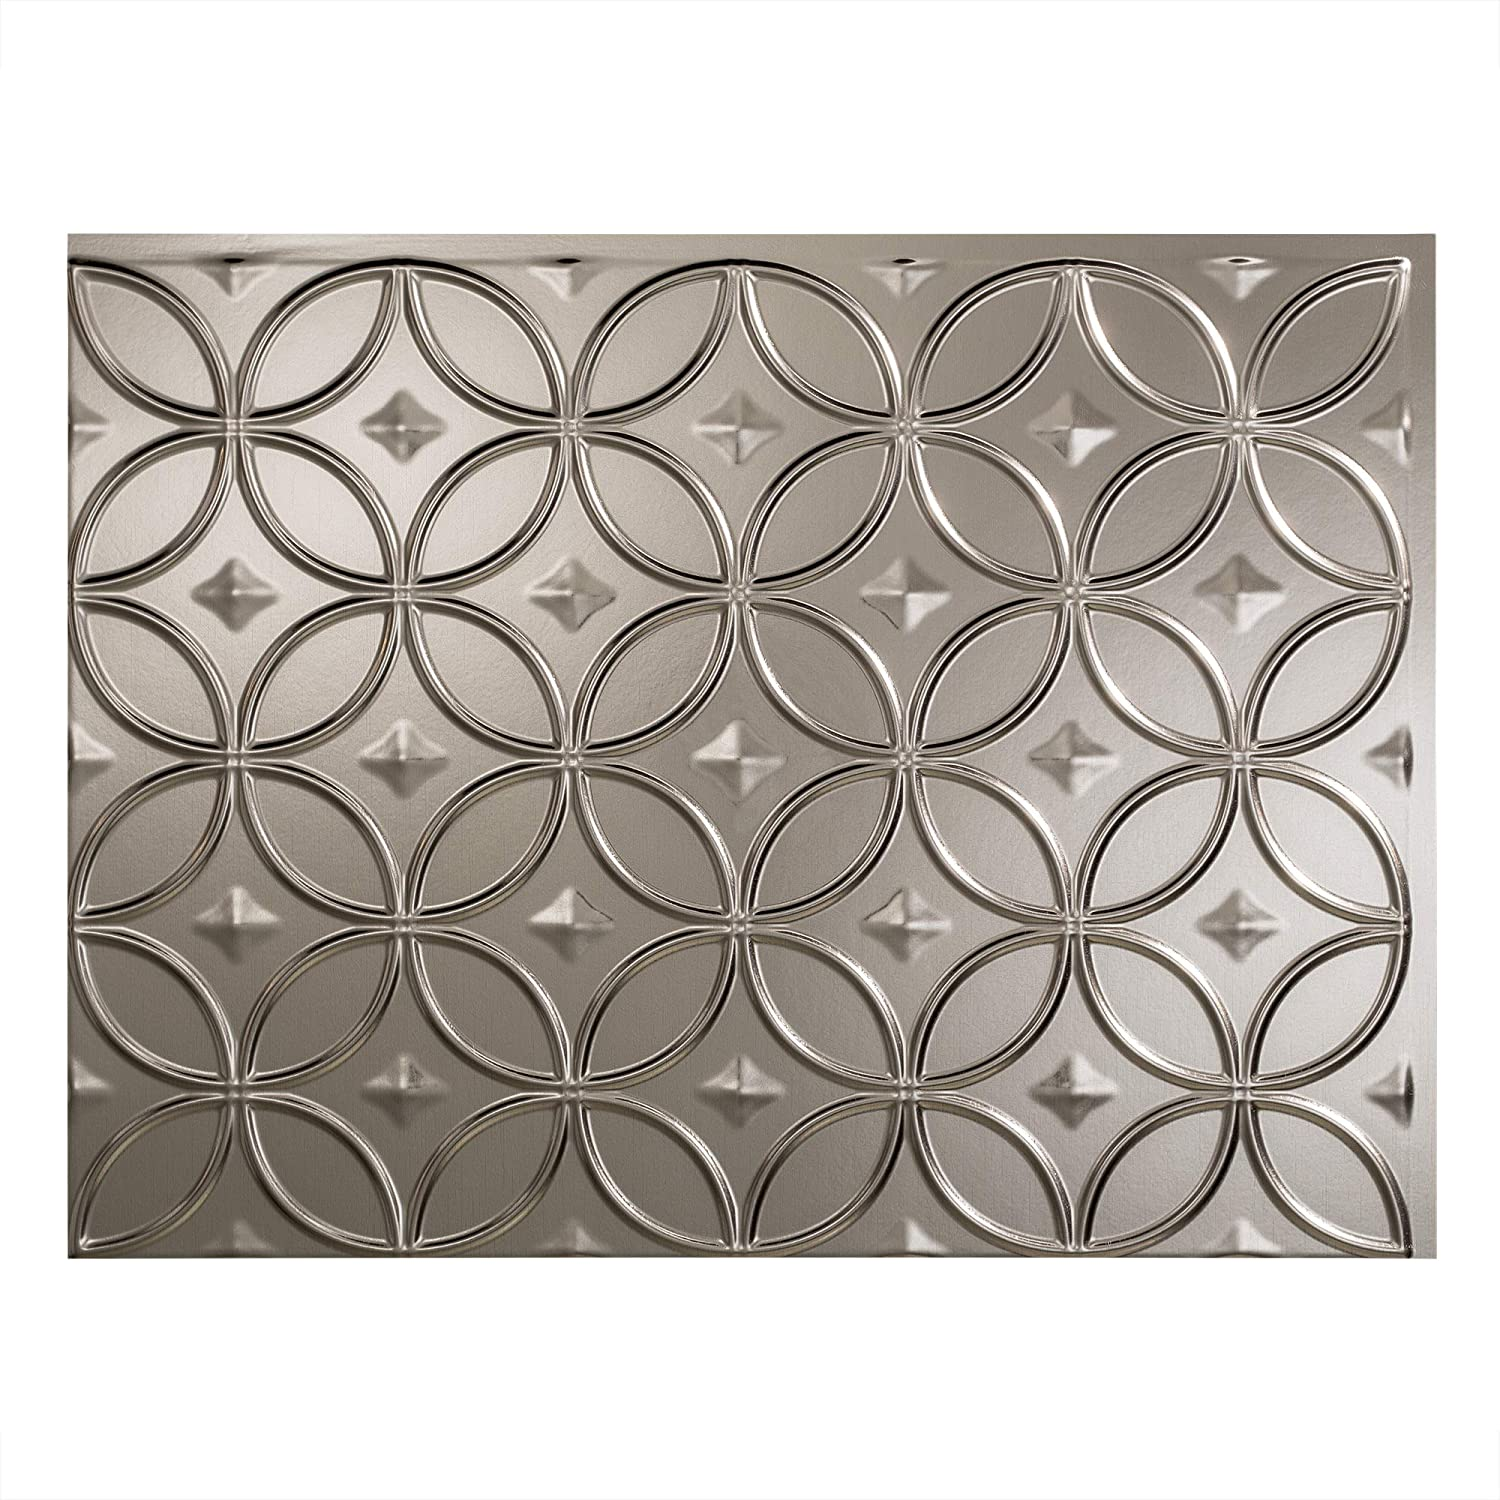 - FASÄDE Rings Decorative Vinyl Backsplash Panel In Brushed Nickel